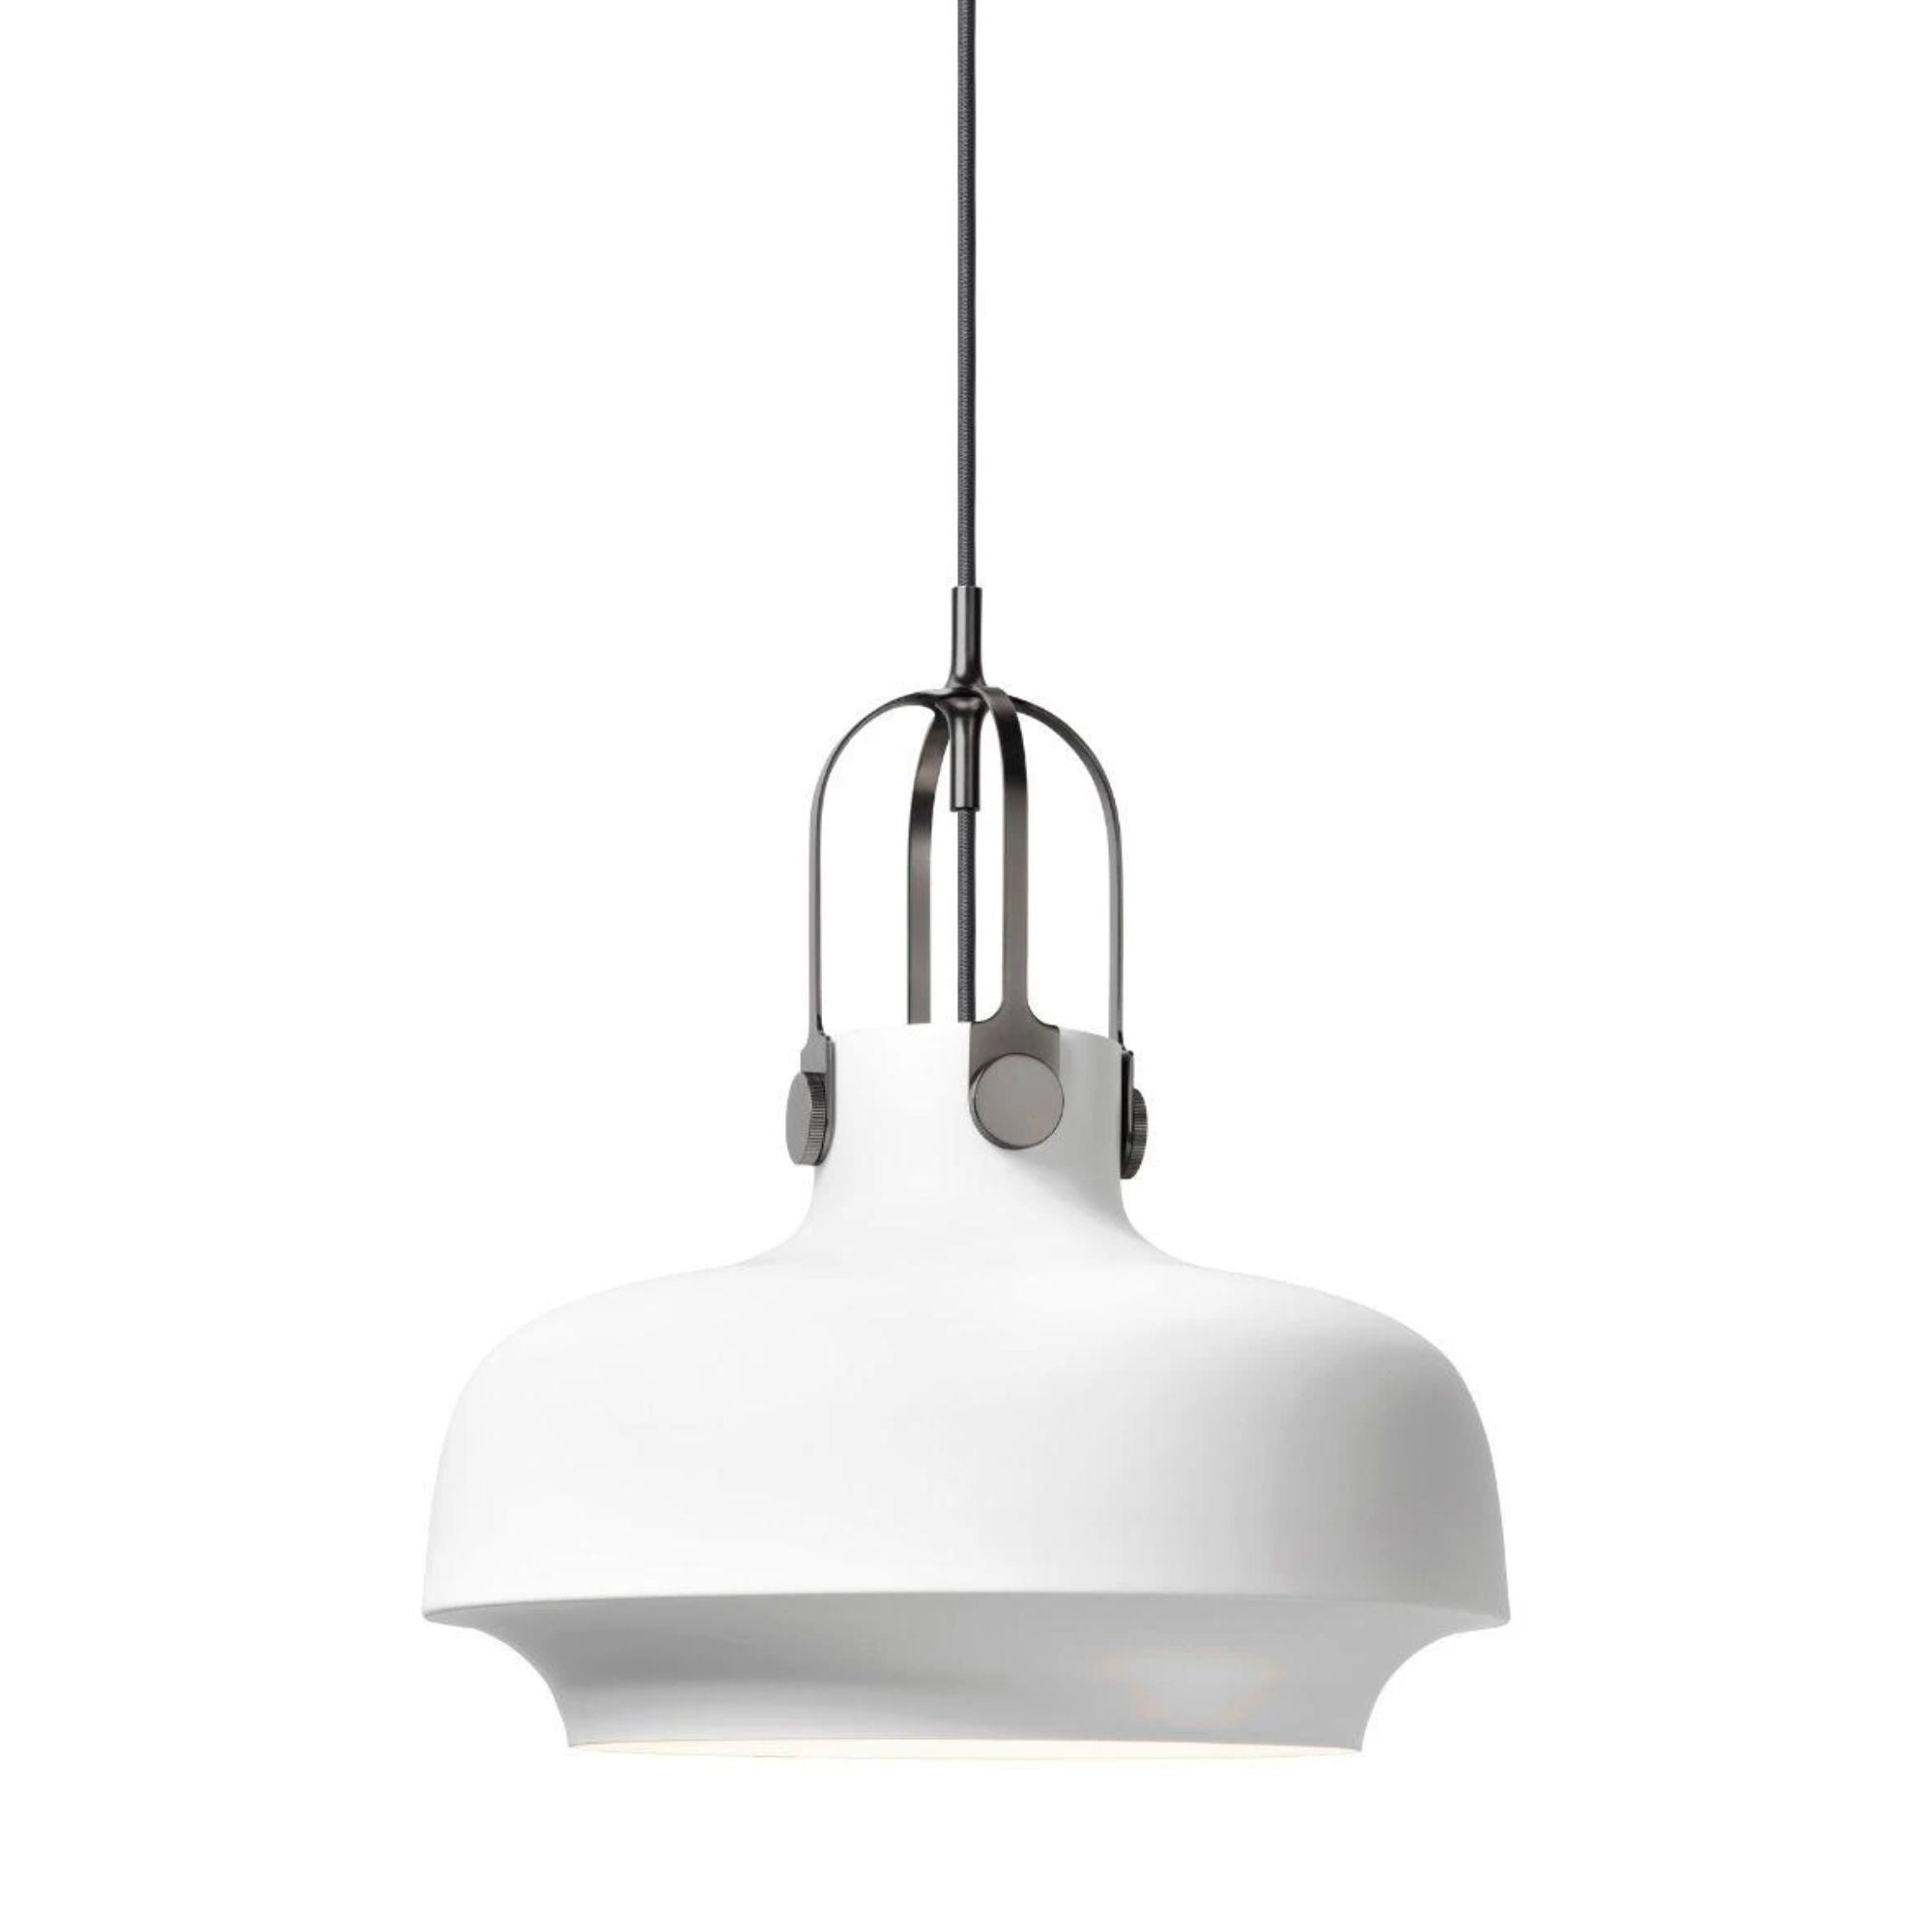 &Tradition SC7 Copenhagen pendant light, matt white - silver suspension